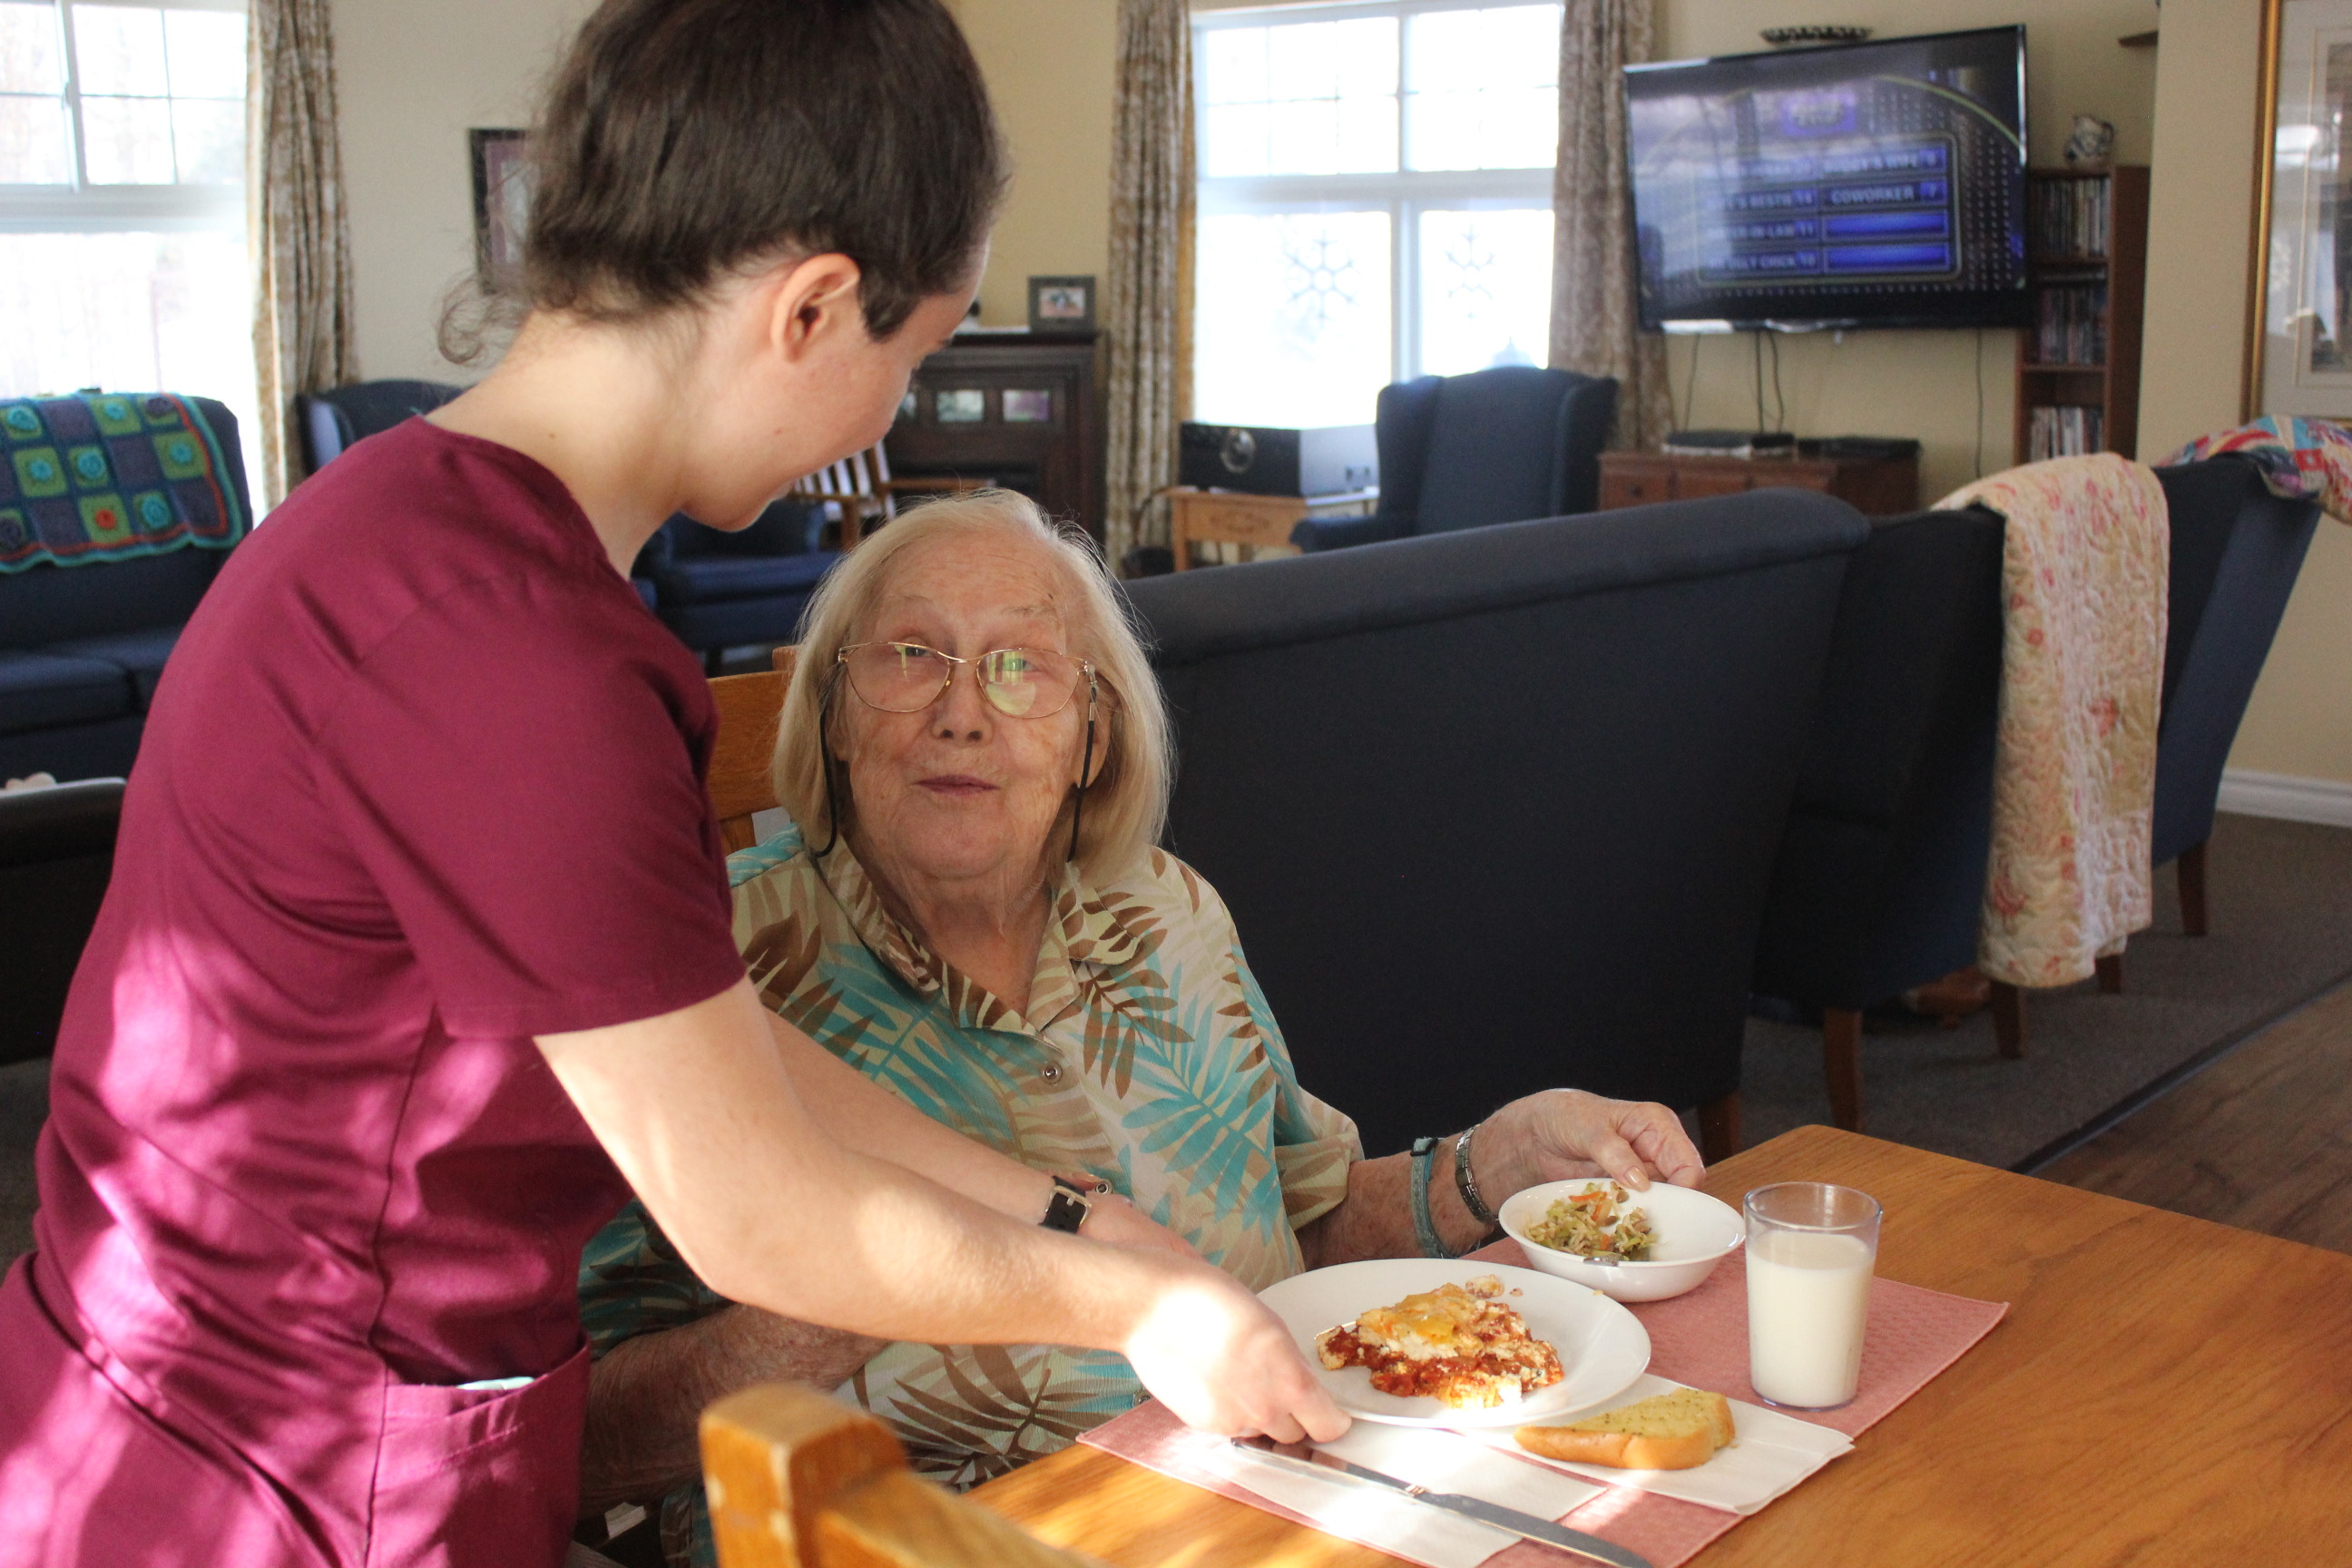 Richmond Care Home resident being served a healthy meal by staff.